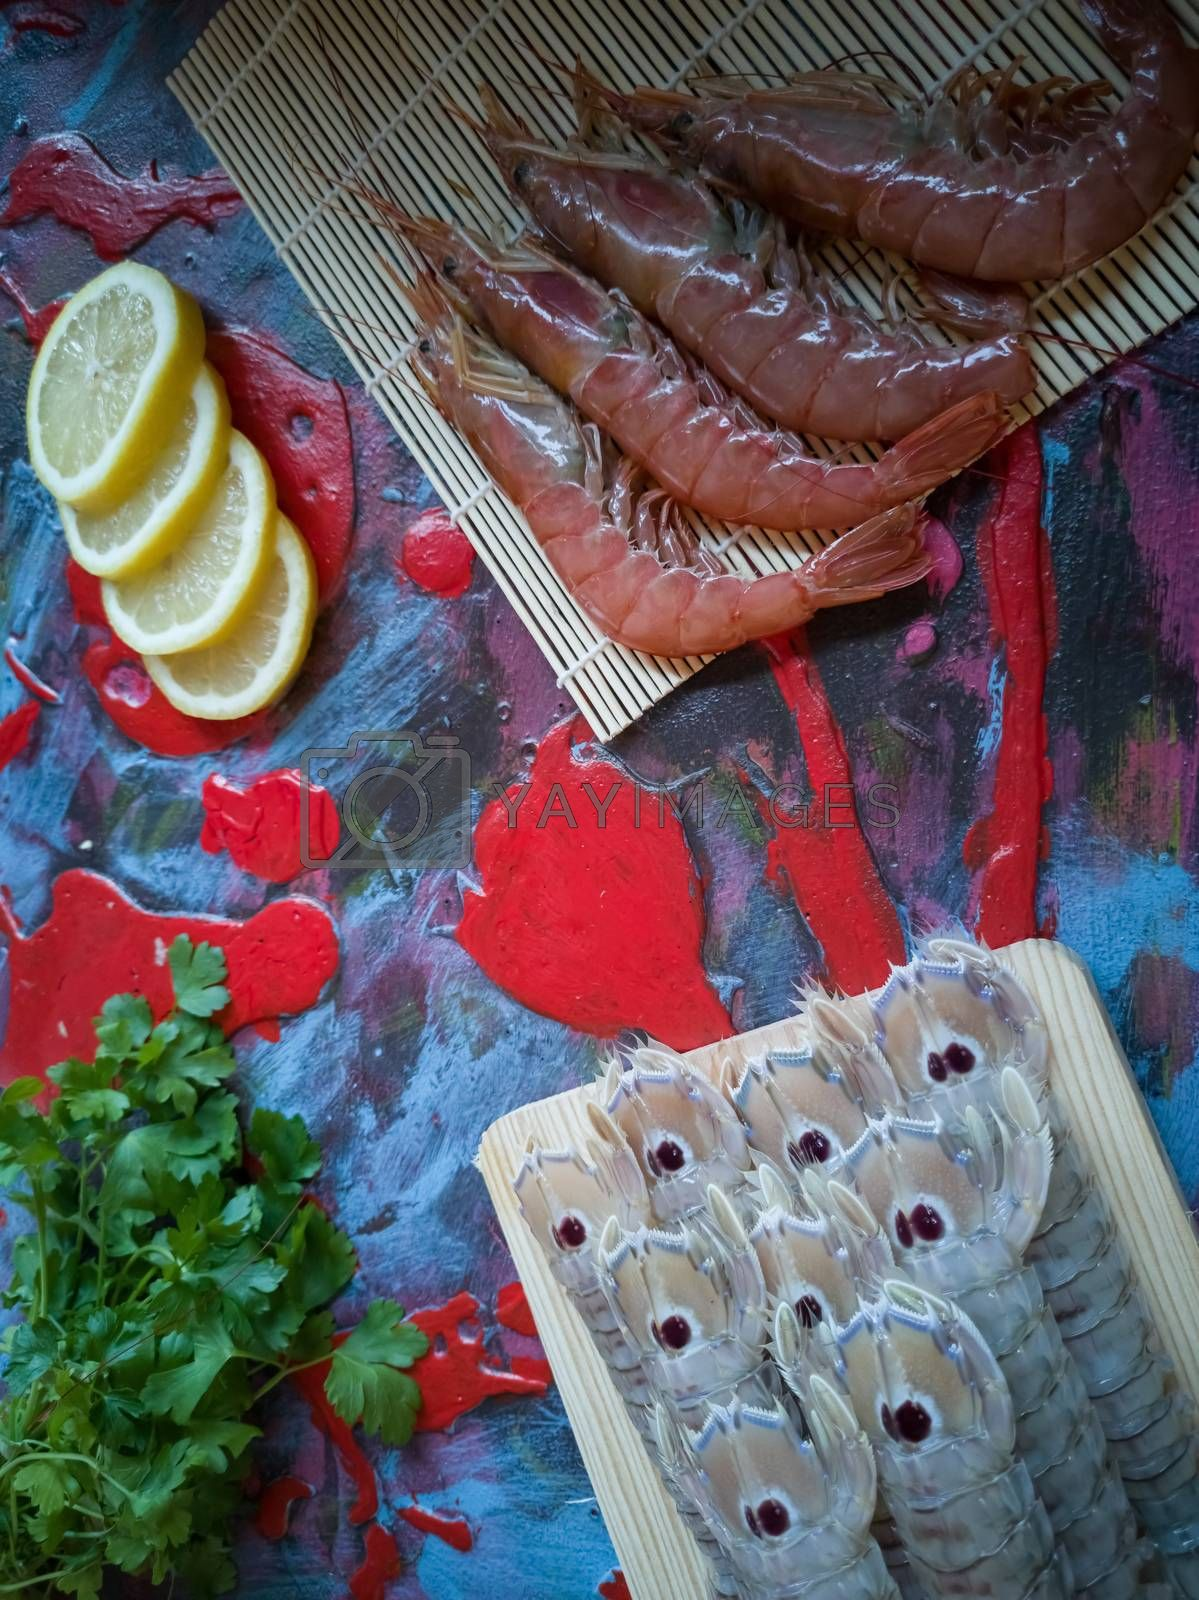 Seafood in composition on colorful and rough background